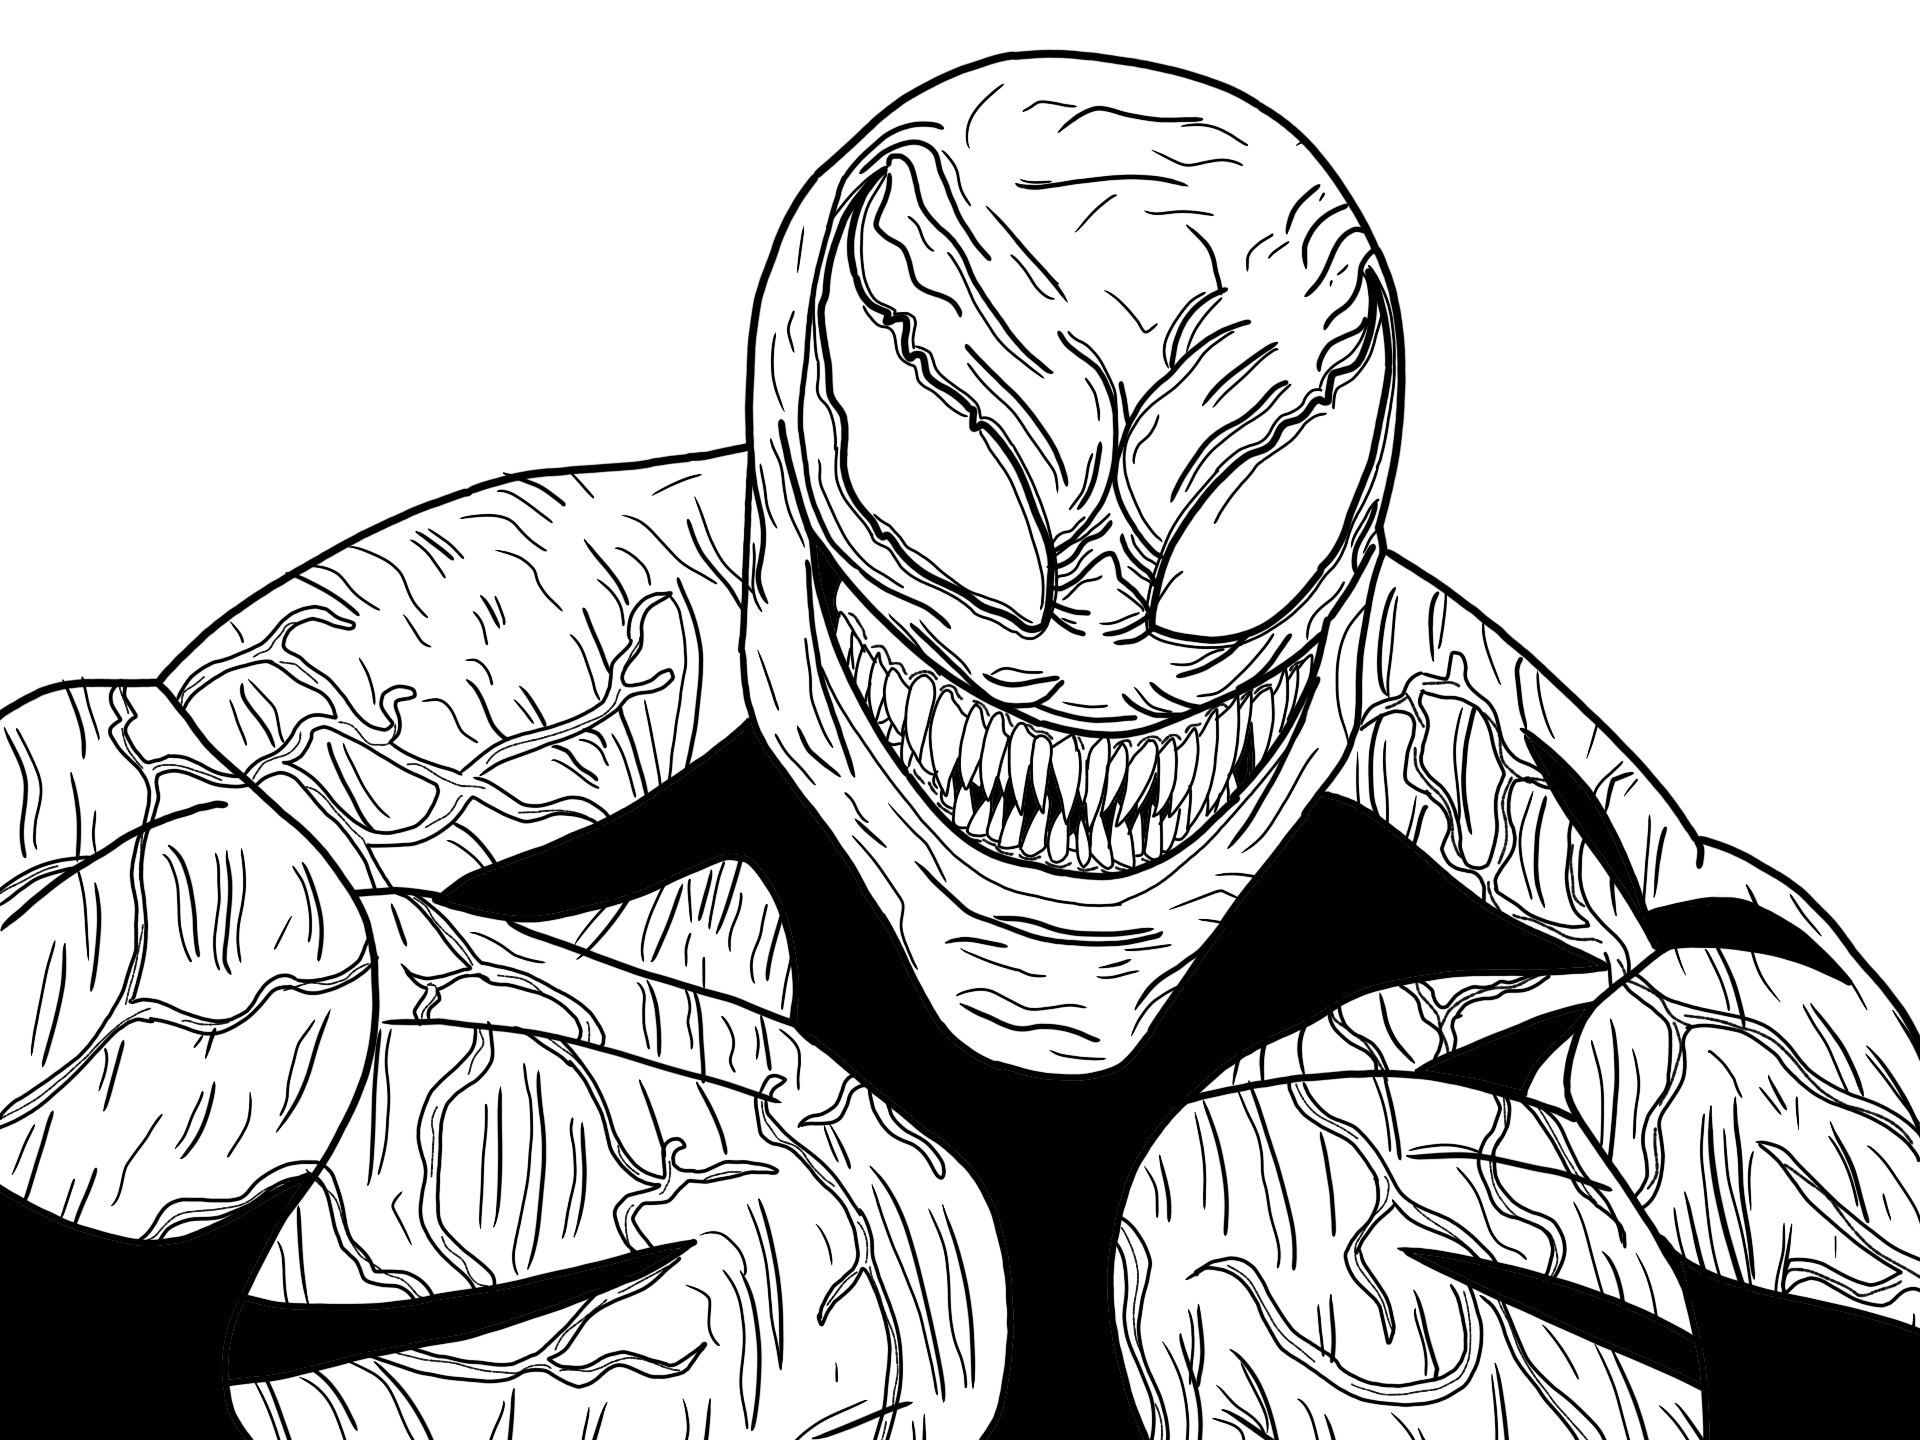 spider man stealth suit coloring page spider man superhero coloring pages suit page stealth coloring spider man